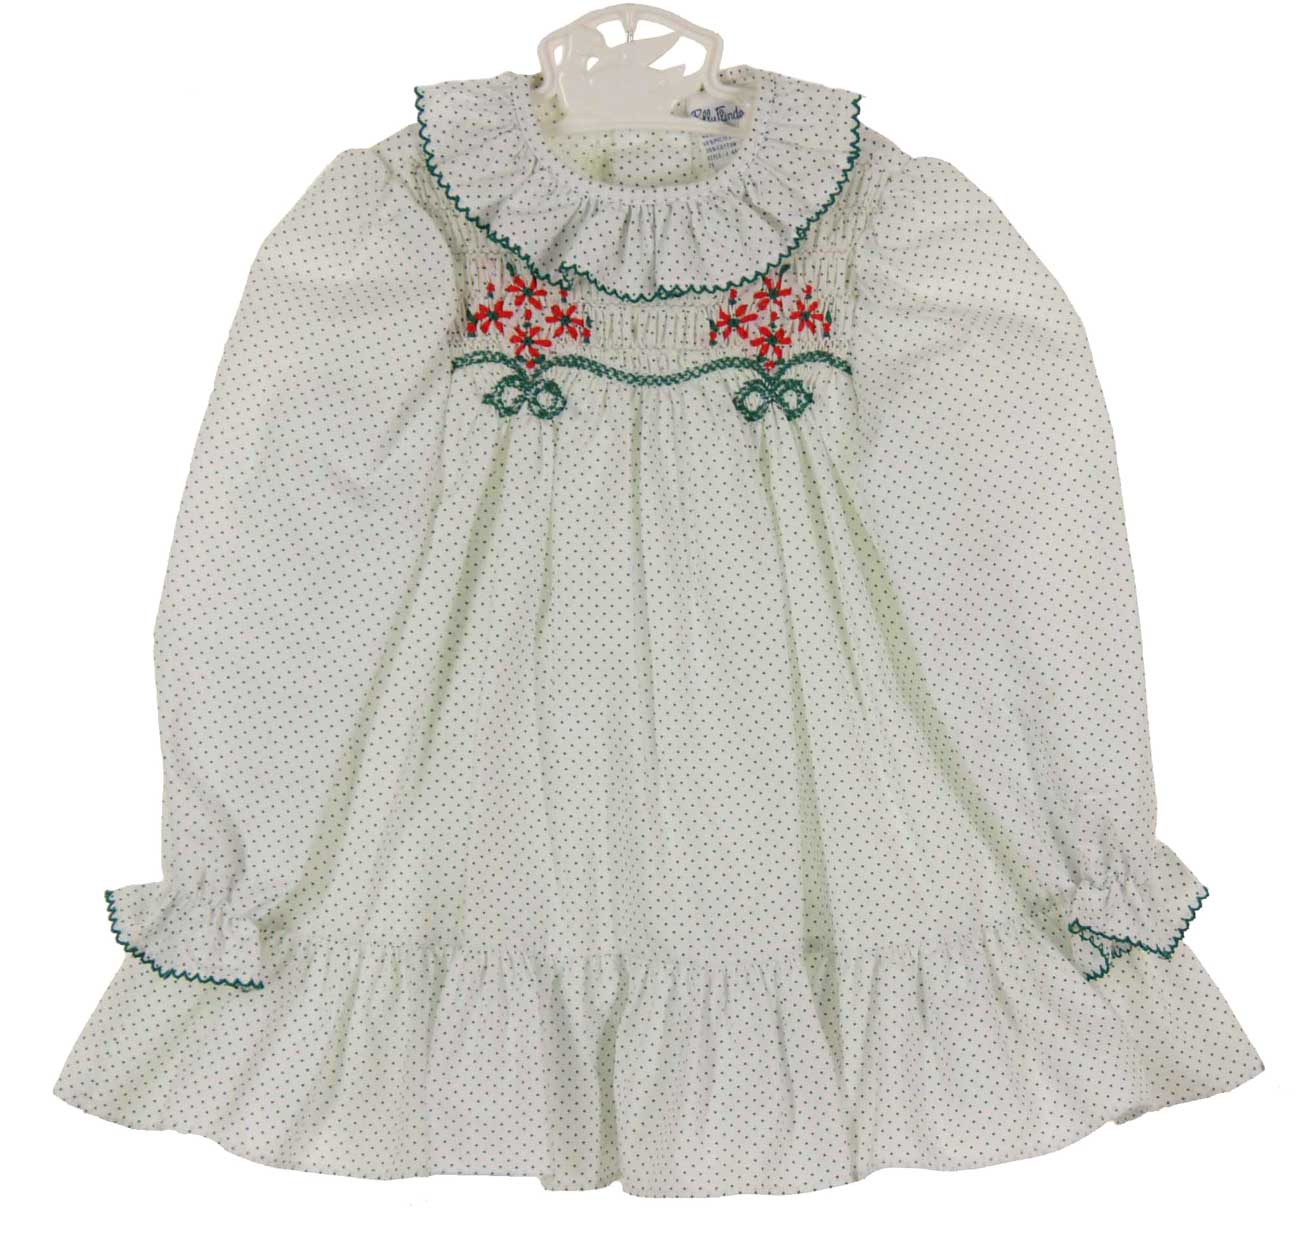 Polly flinders white dotted smocked dress with red flowers polly flinders white dotted christmas